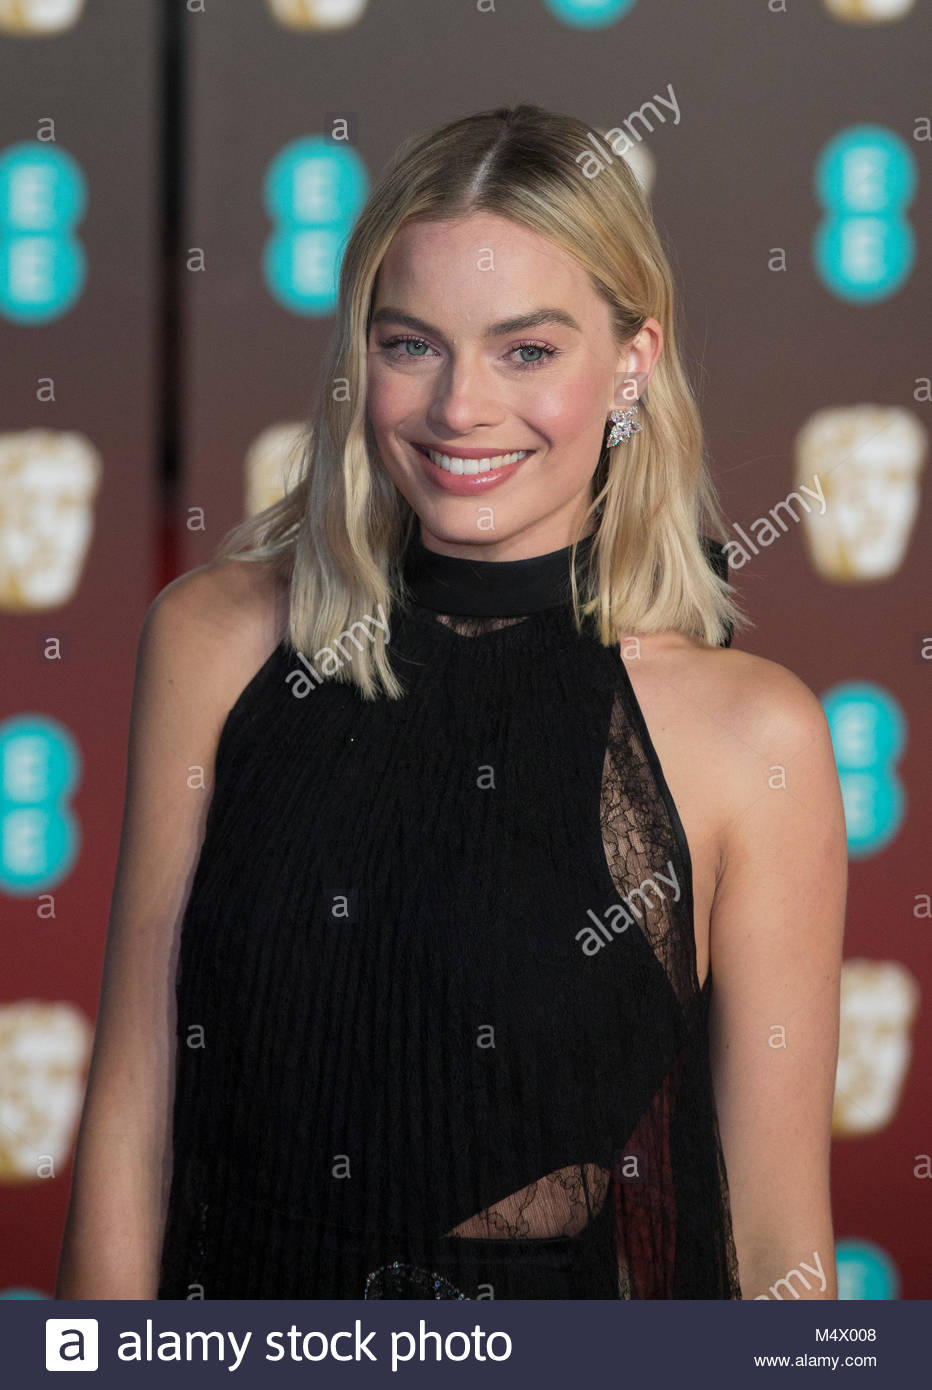 London, UK. 18th Feb 2018. Margot Robbie at The BAFTA awards ceremony are held at the Royal Albert Hall in London.Photograph Stock Photo